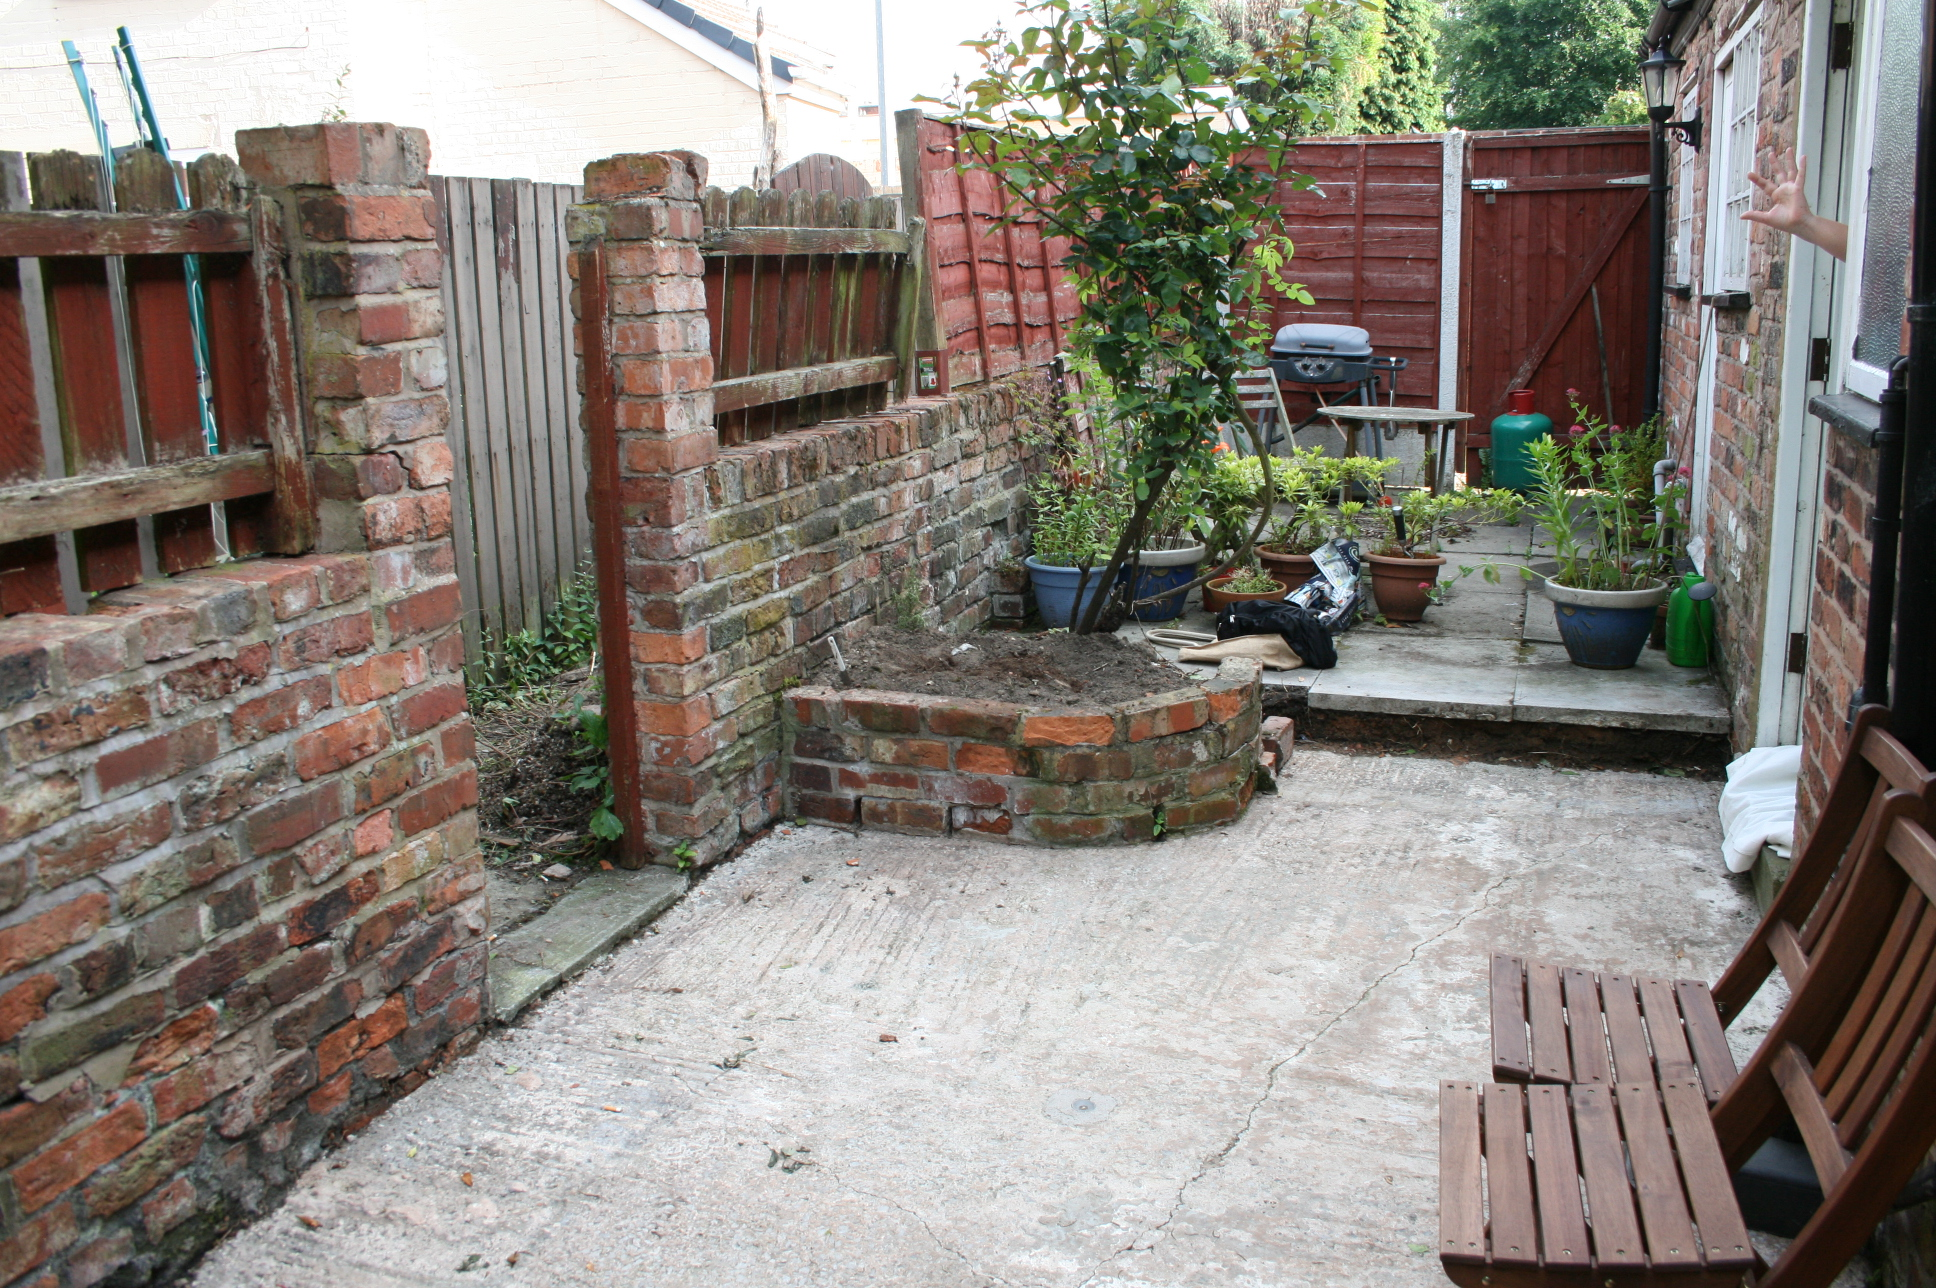 Shed Plan: The Small City Garden Makeover on Small Backyard Renovation Ideas id=60540